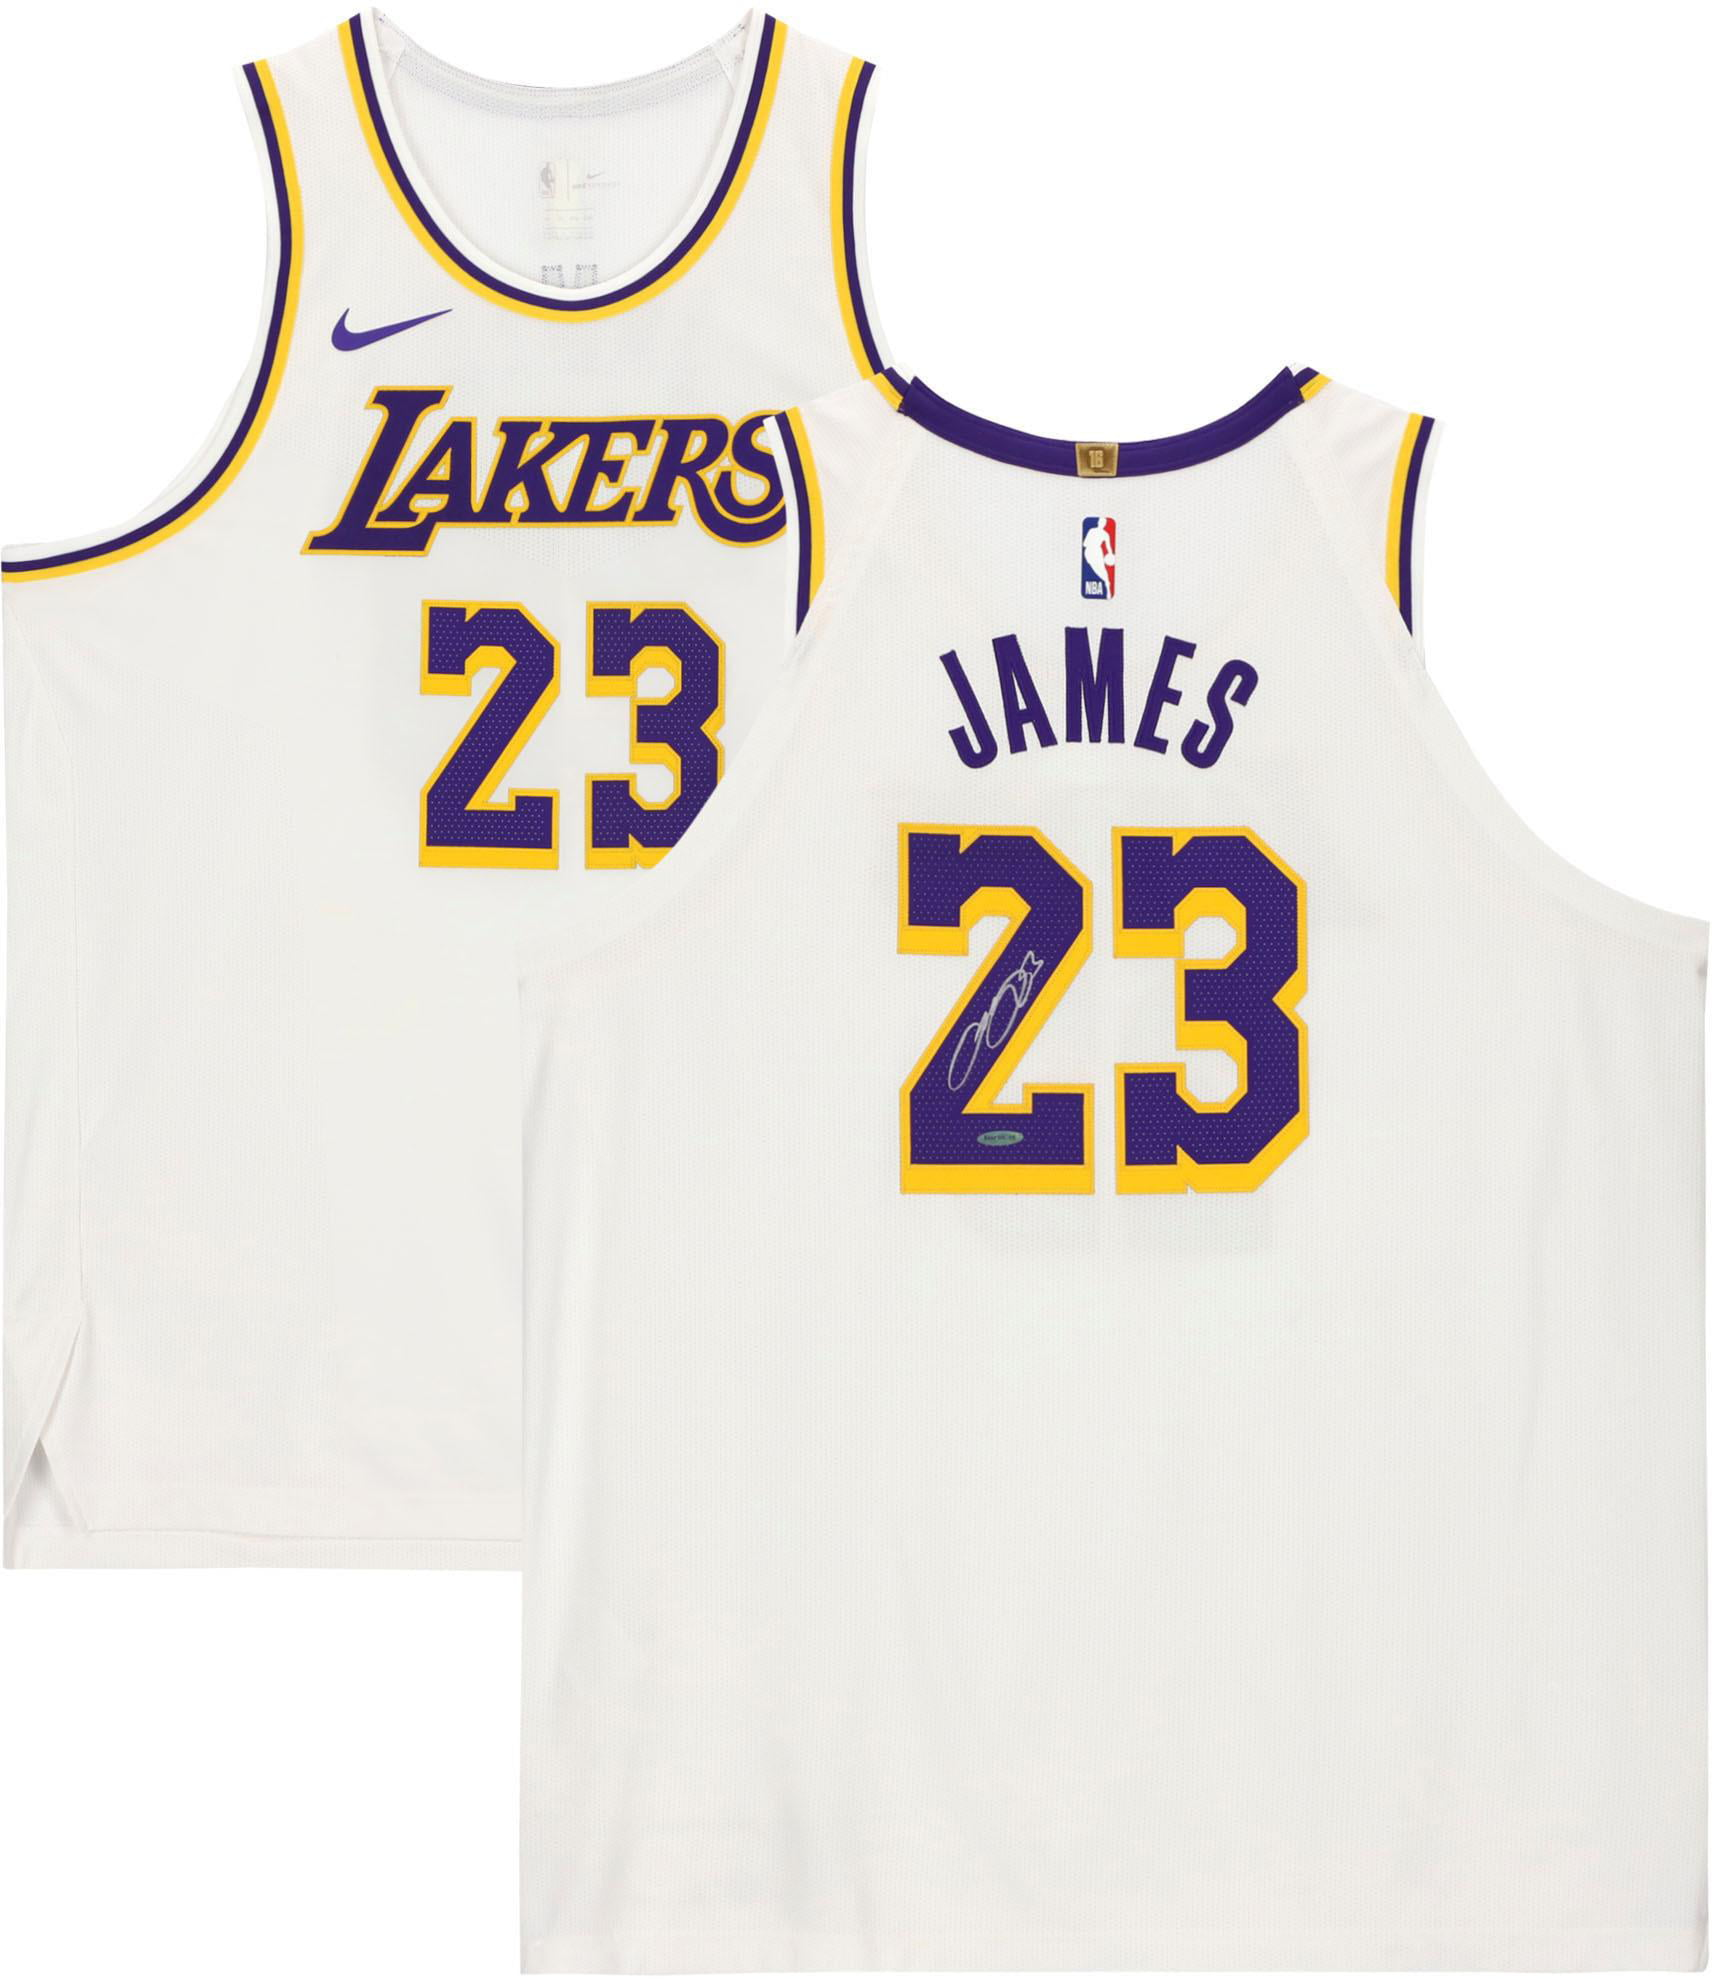 LeBron James Los Angeles Lakers Autographed White Jersey - Upper ...